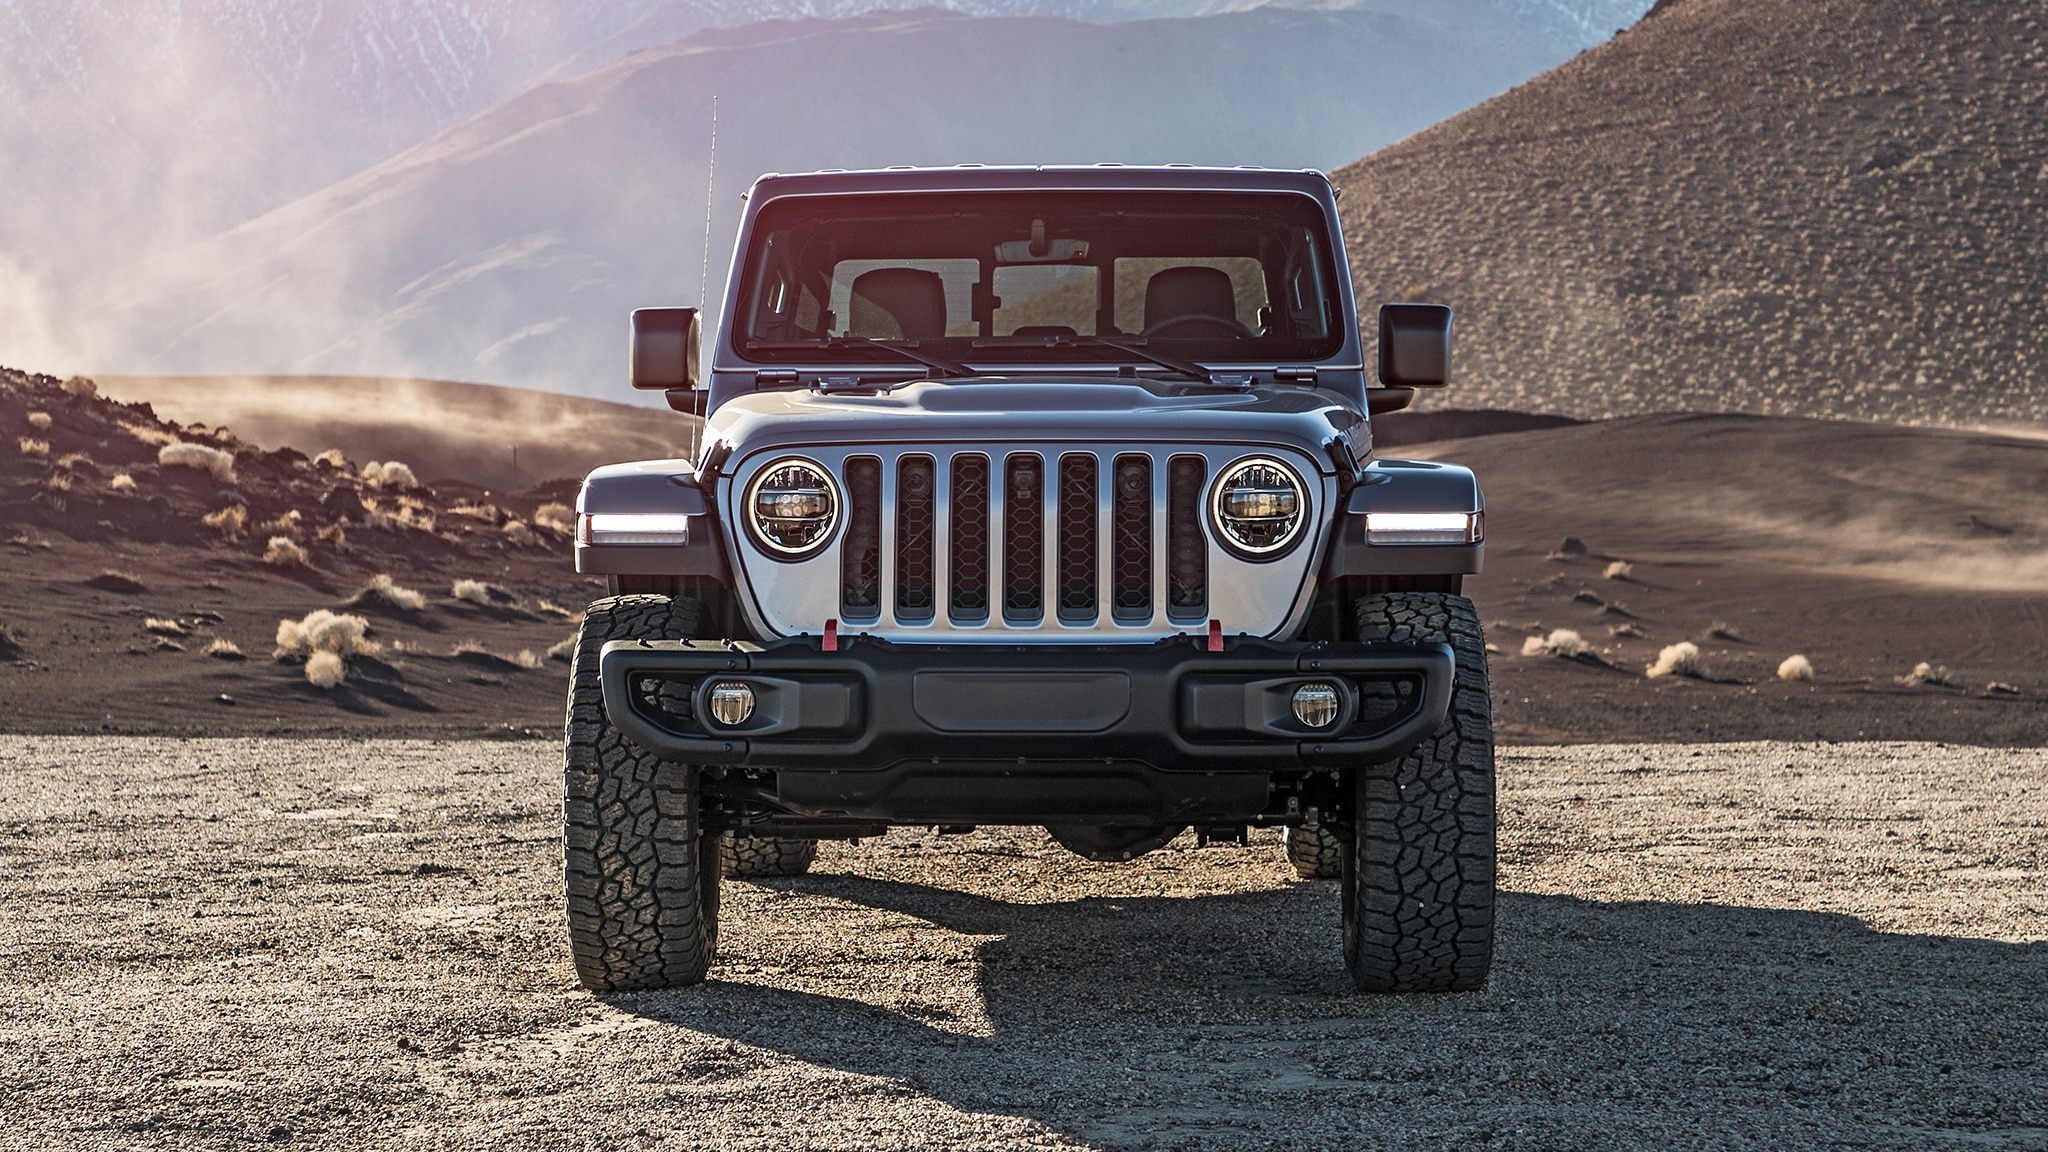 Jeep: The Hellcat Will Fit in the Gladiator, But We Won't ...